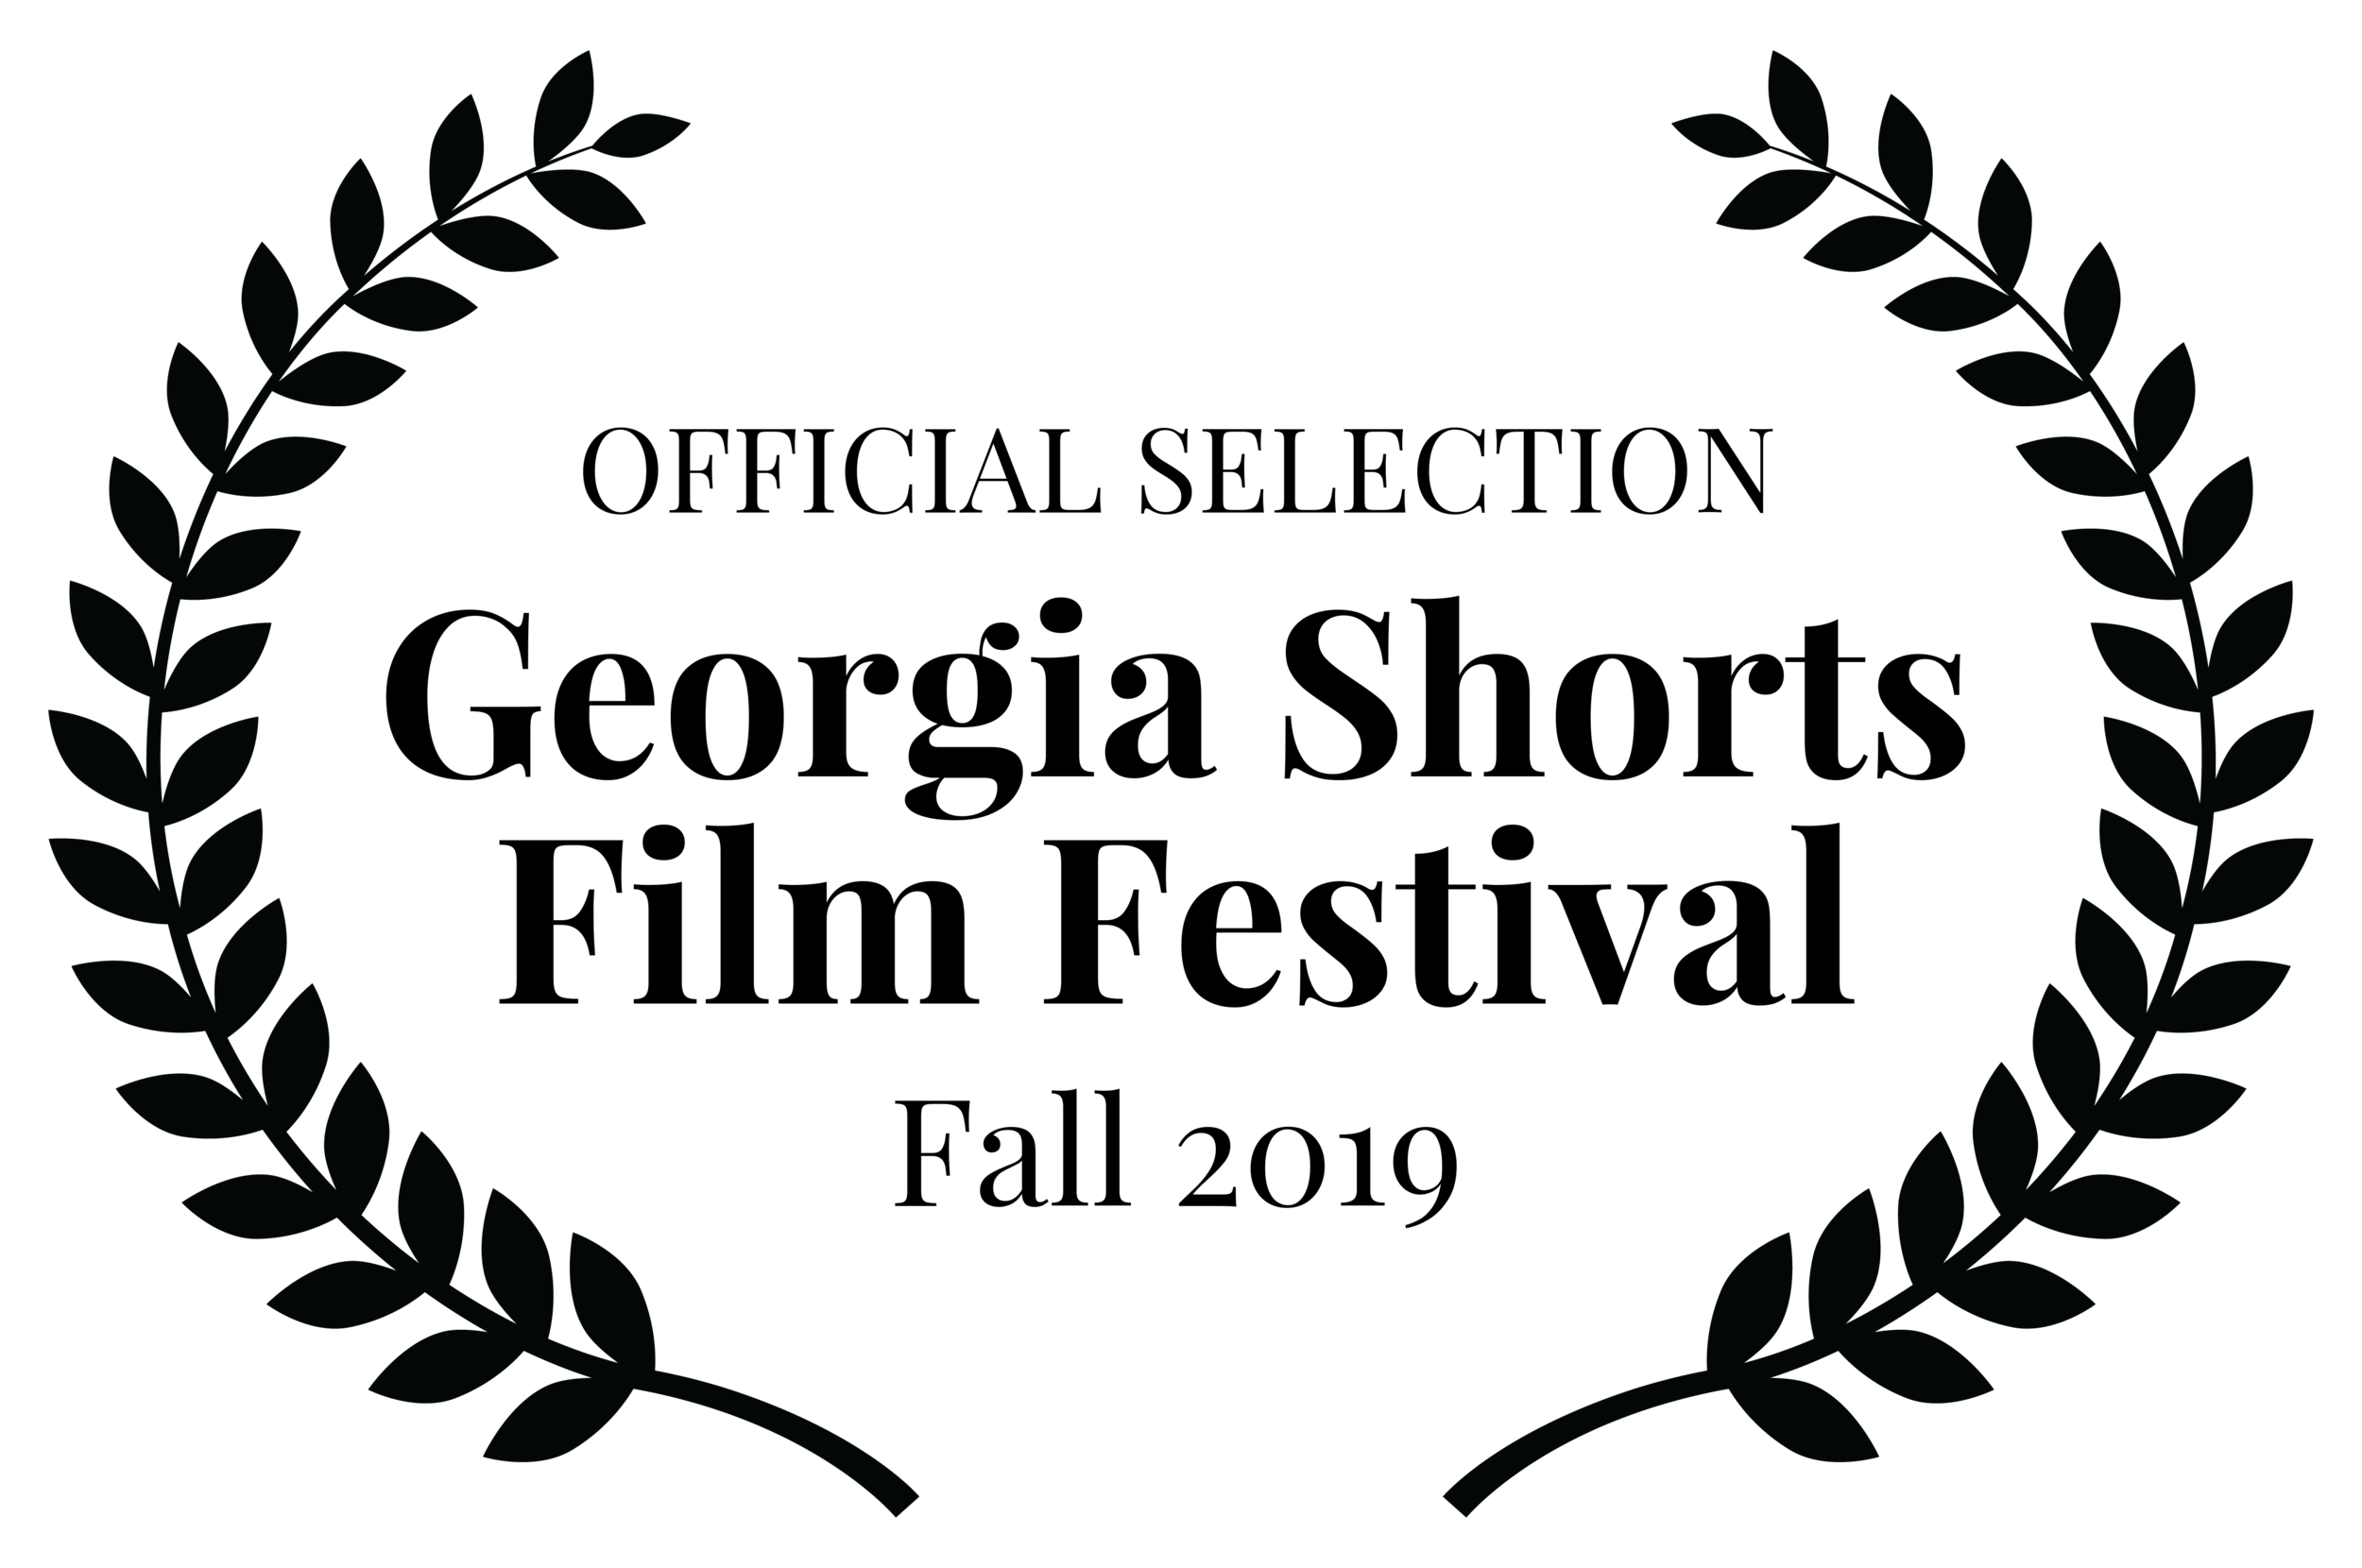 OFFICIALSELECTION-GeorgiaShortsFilmFestival-Fall2019.png